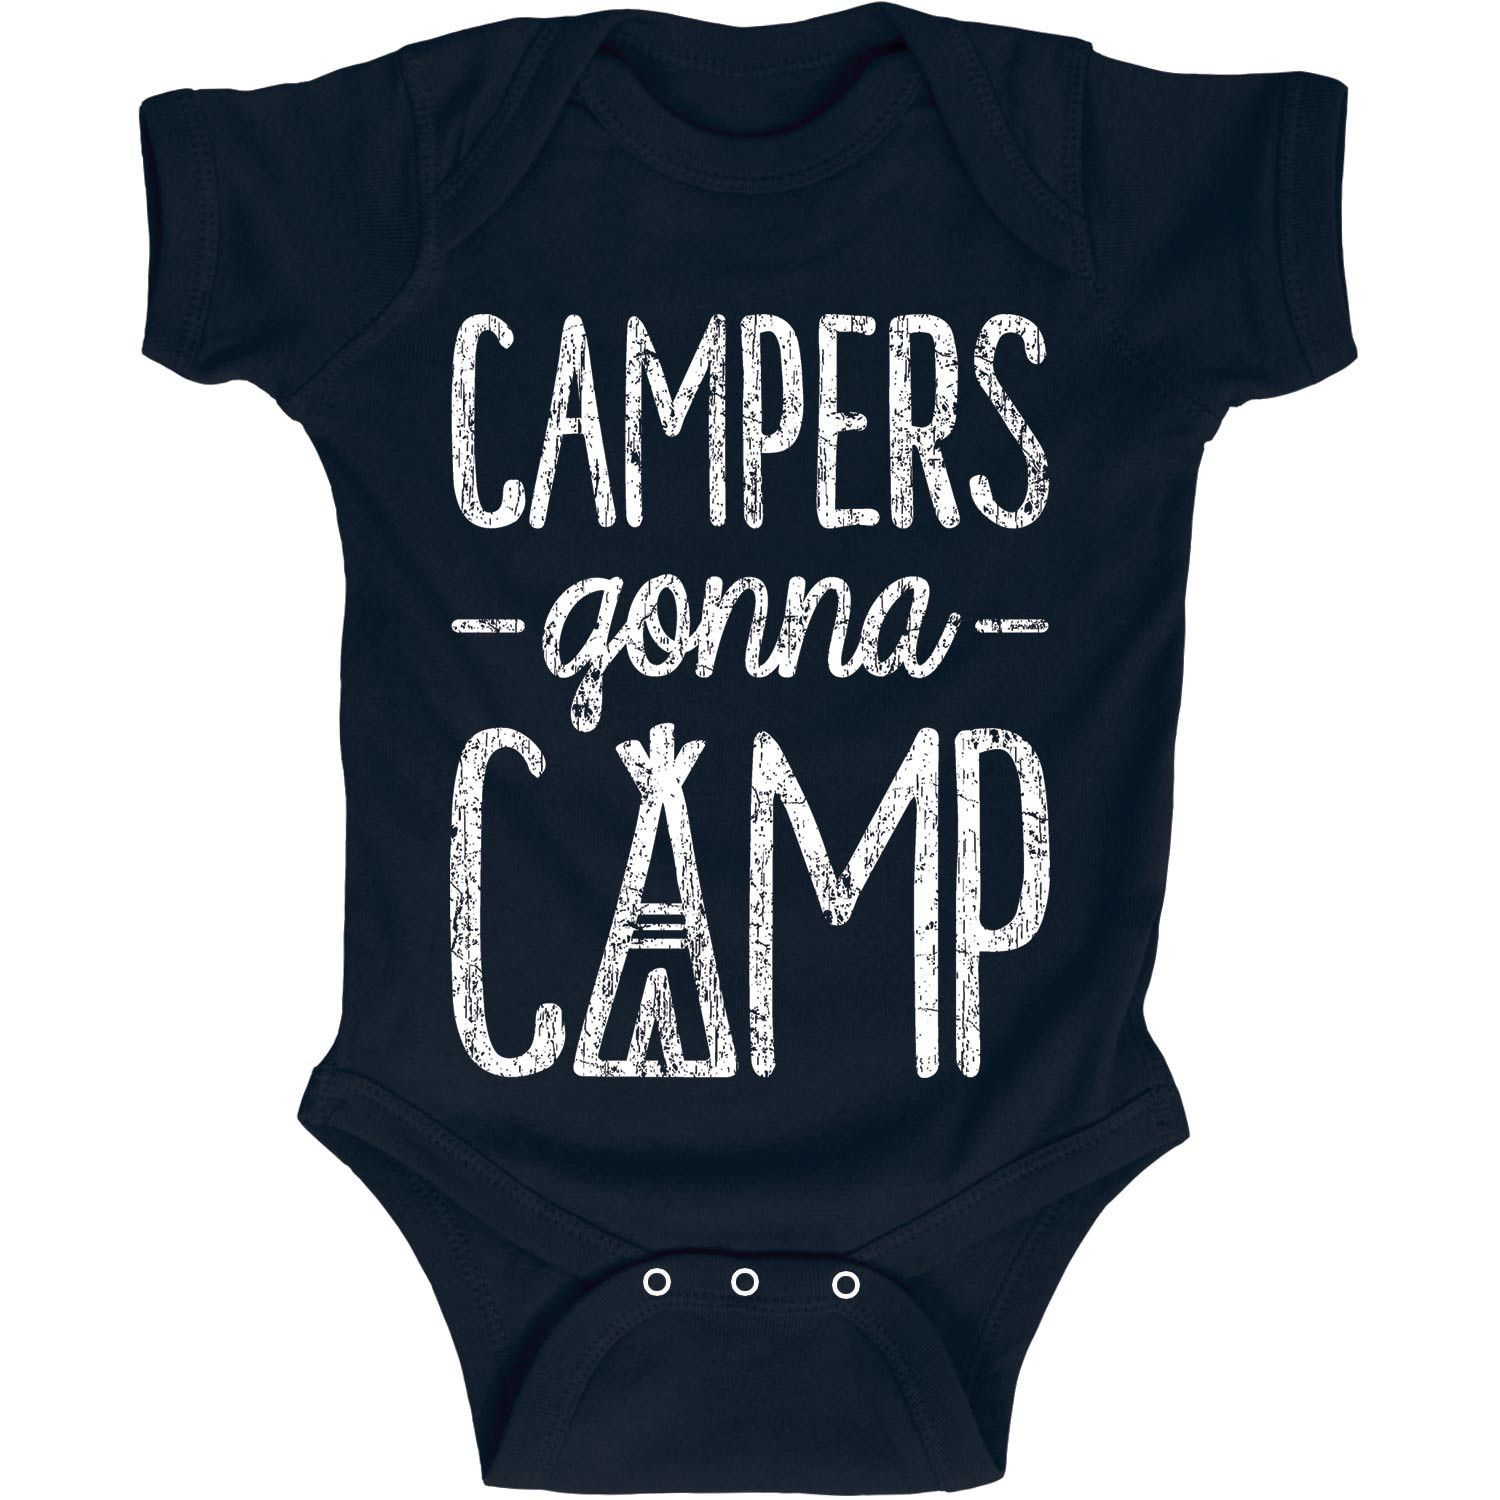 Heres A Cool Camping Idea Shirts For The Kids On Your Next Trip